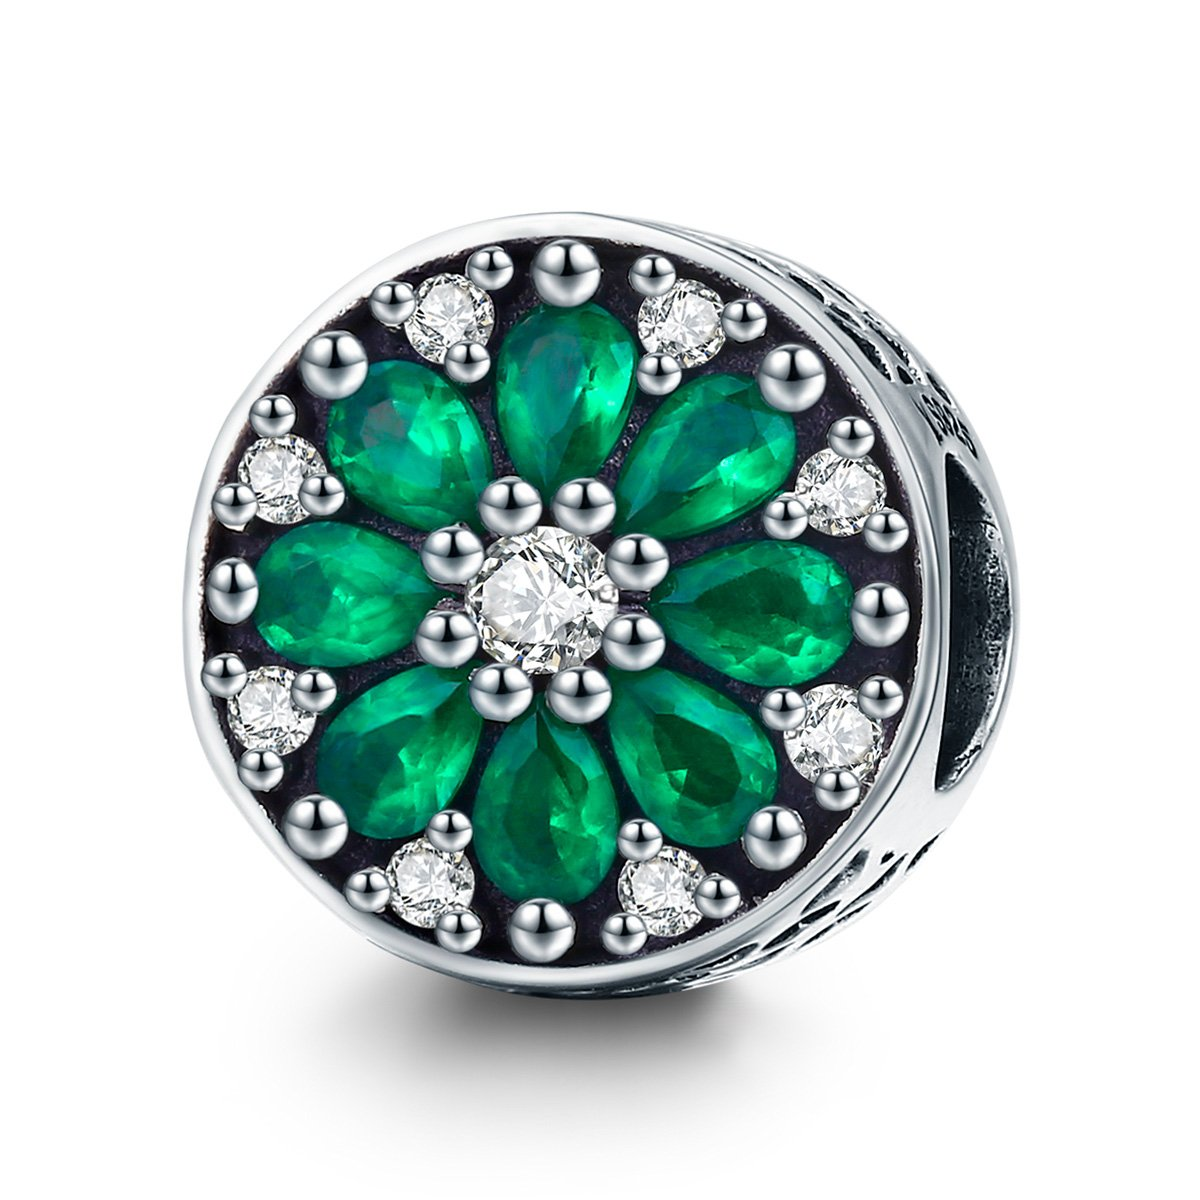 The Kiss Summer Collection Luminous Green Crystal CZ Round 925 Sterling Silver Bead Fits European Charm Bracelet